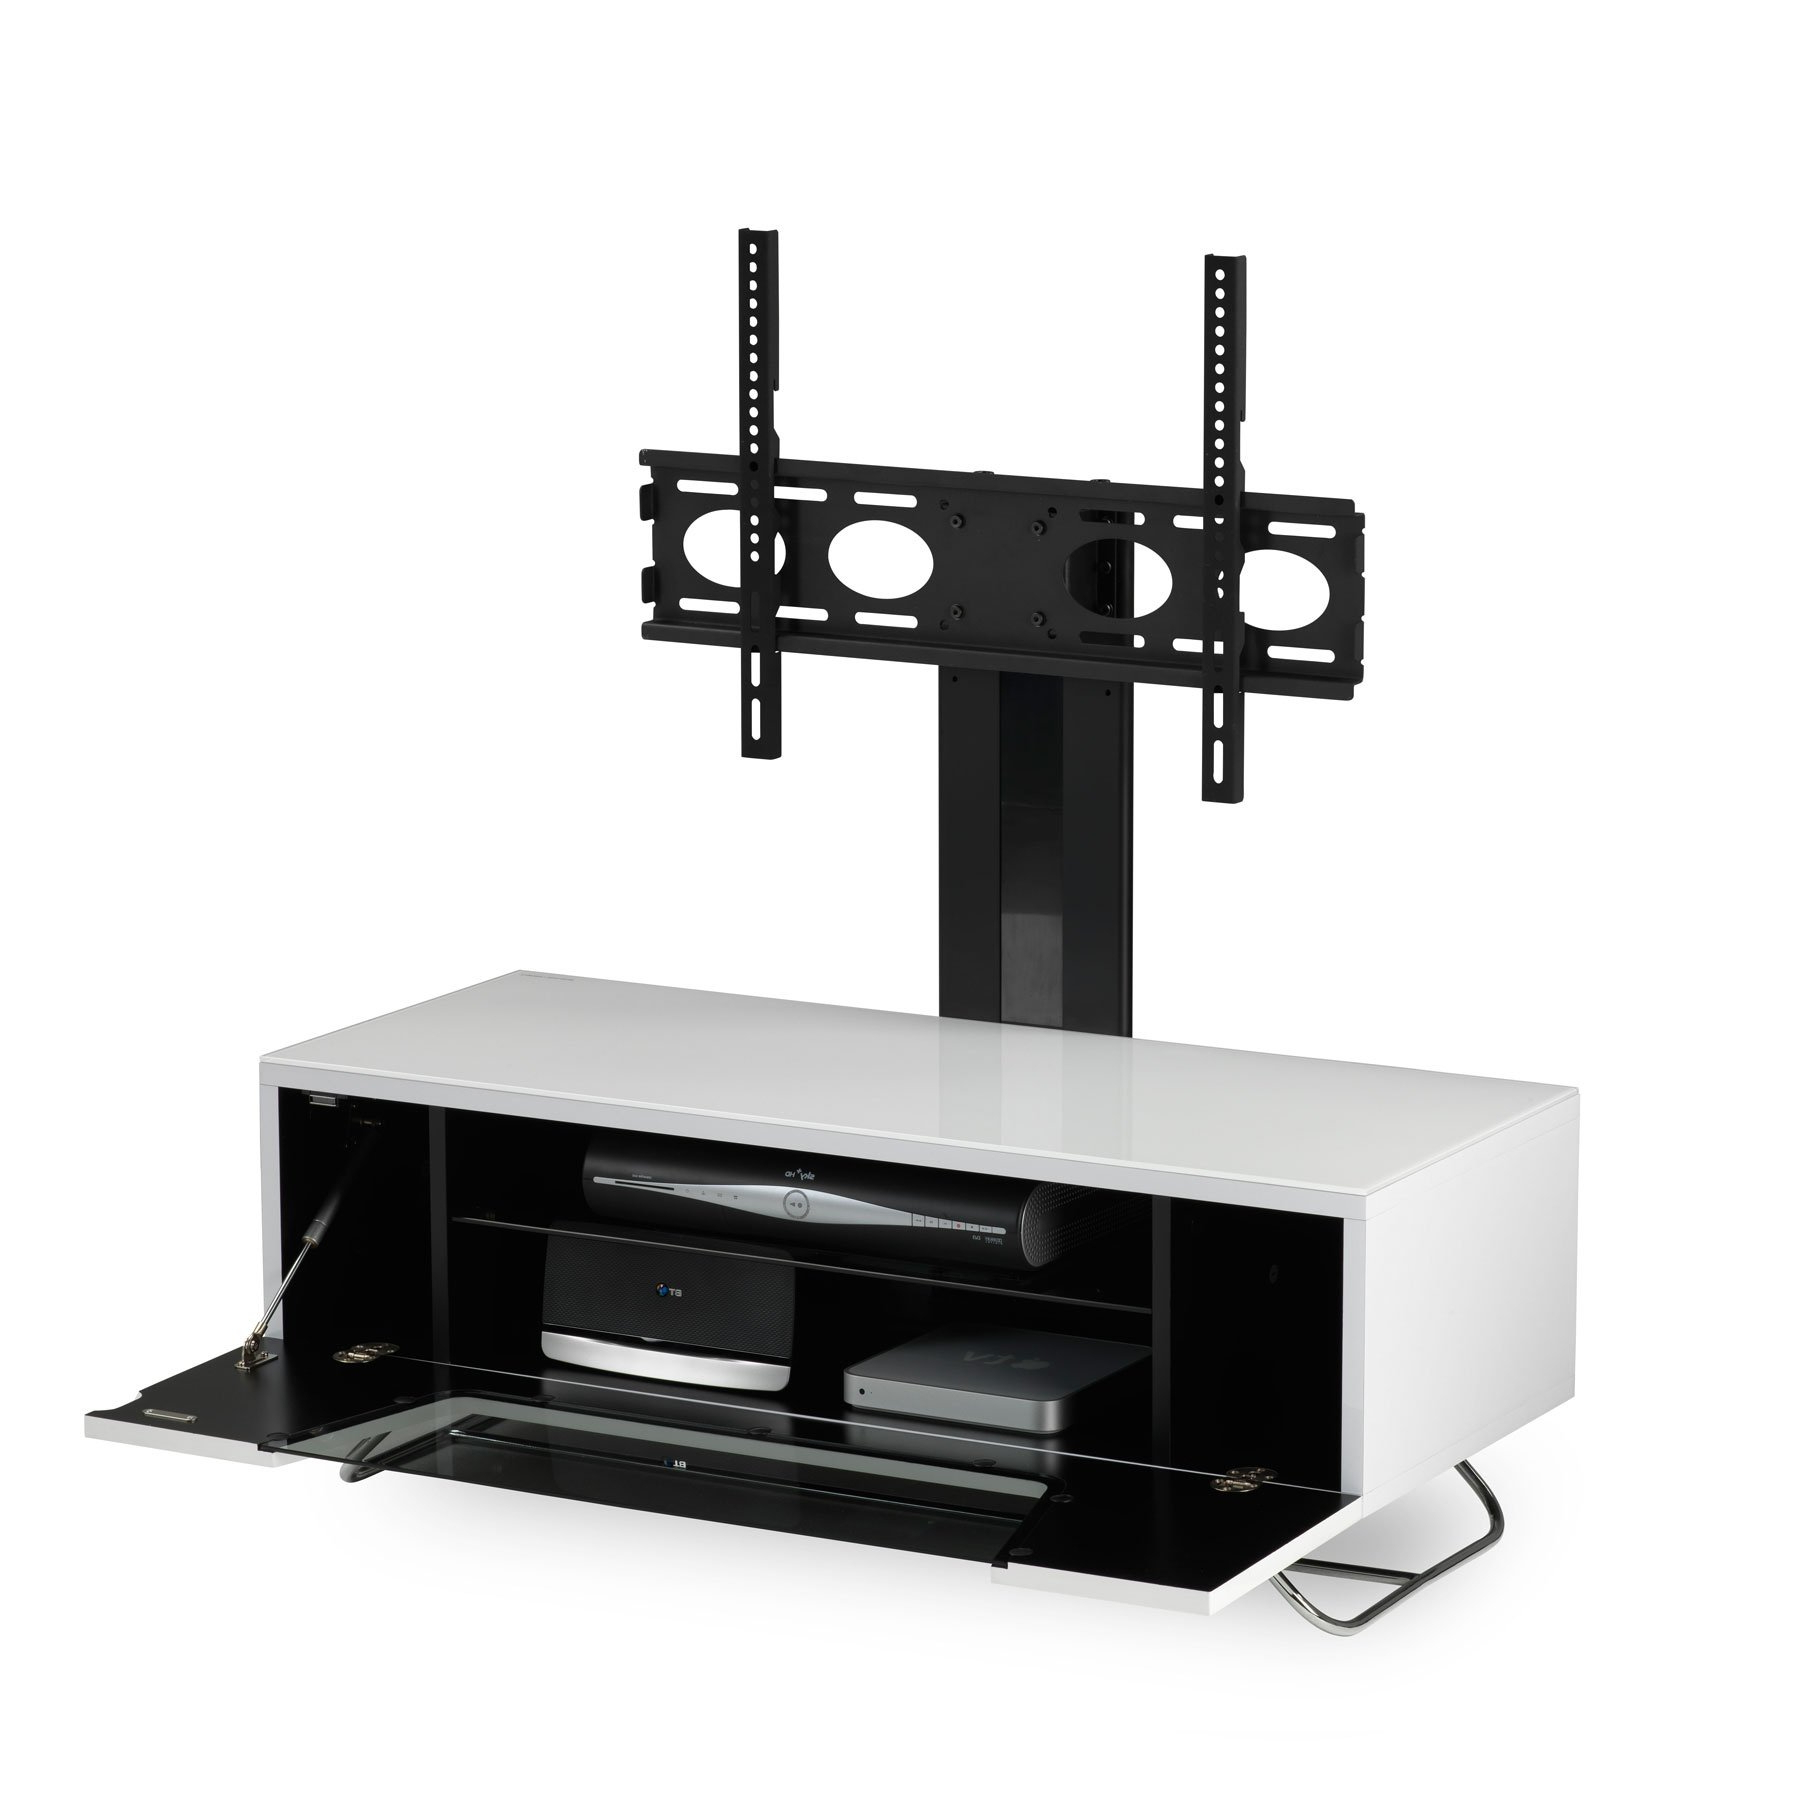 """Tv Stands For Tvs Up To 50"""" With Regard To Most Popular Alphason Chromium 2 100cm White Tv Stand For Up To 50"""" Tvs (View 12 of 25)"""